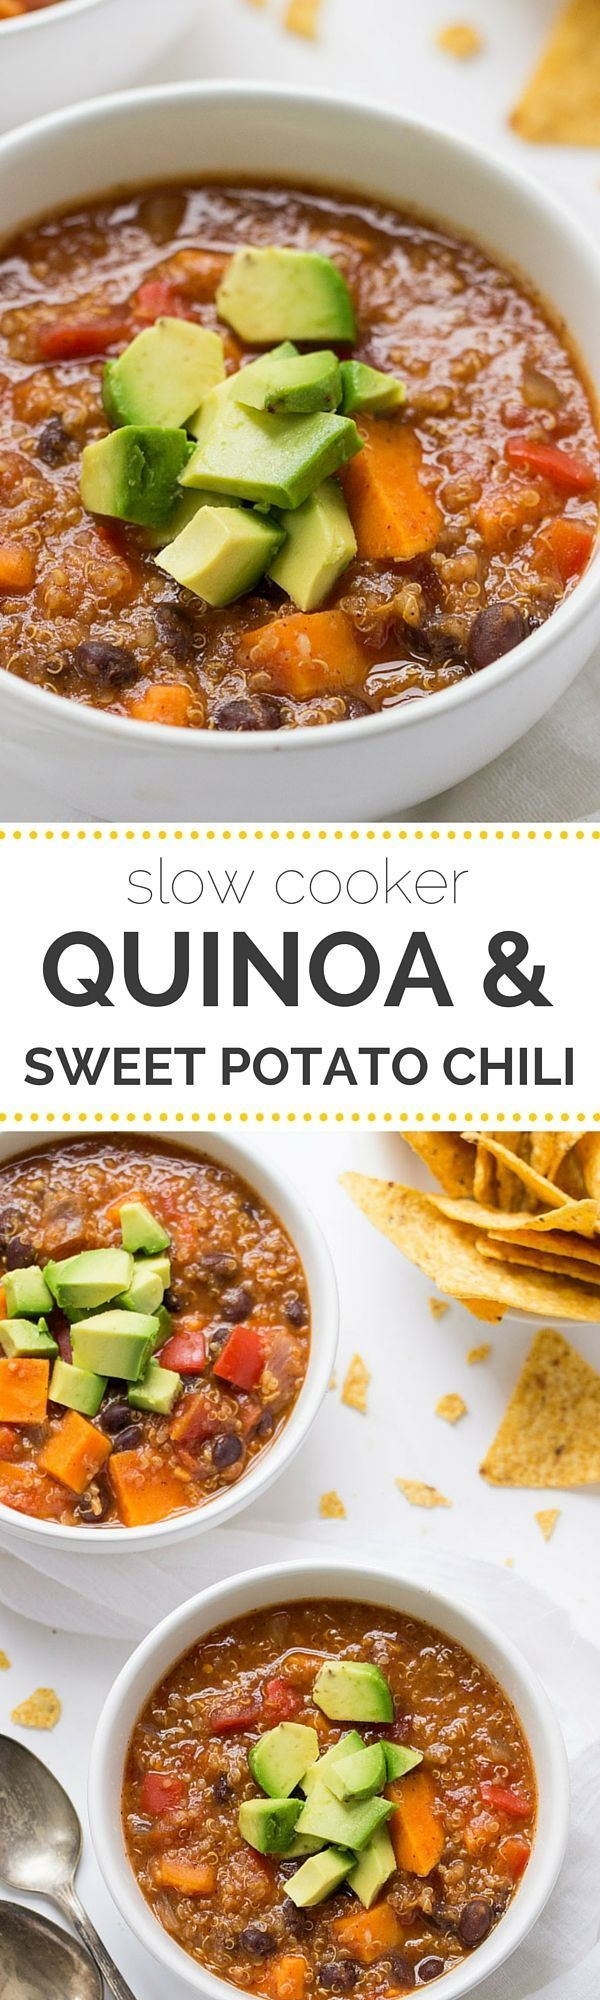 147 best images about QUINOA SOUP RECIPES on Pinterest ...